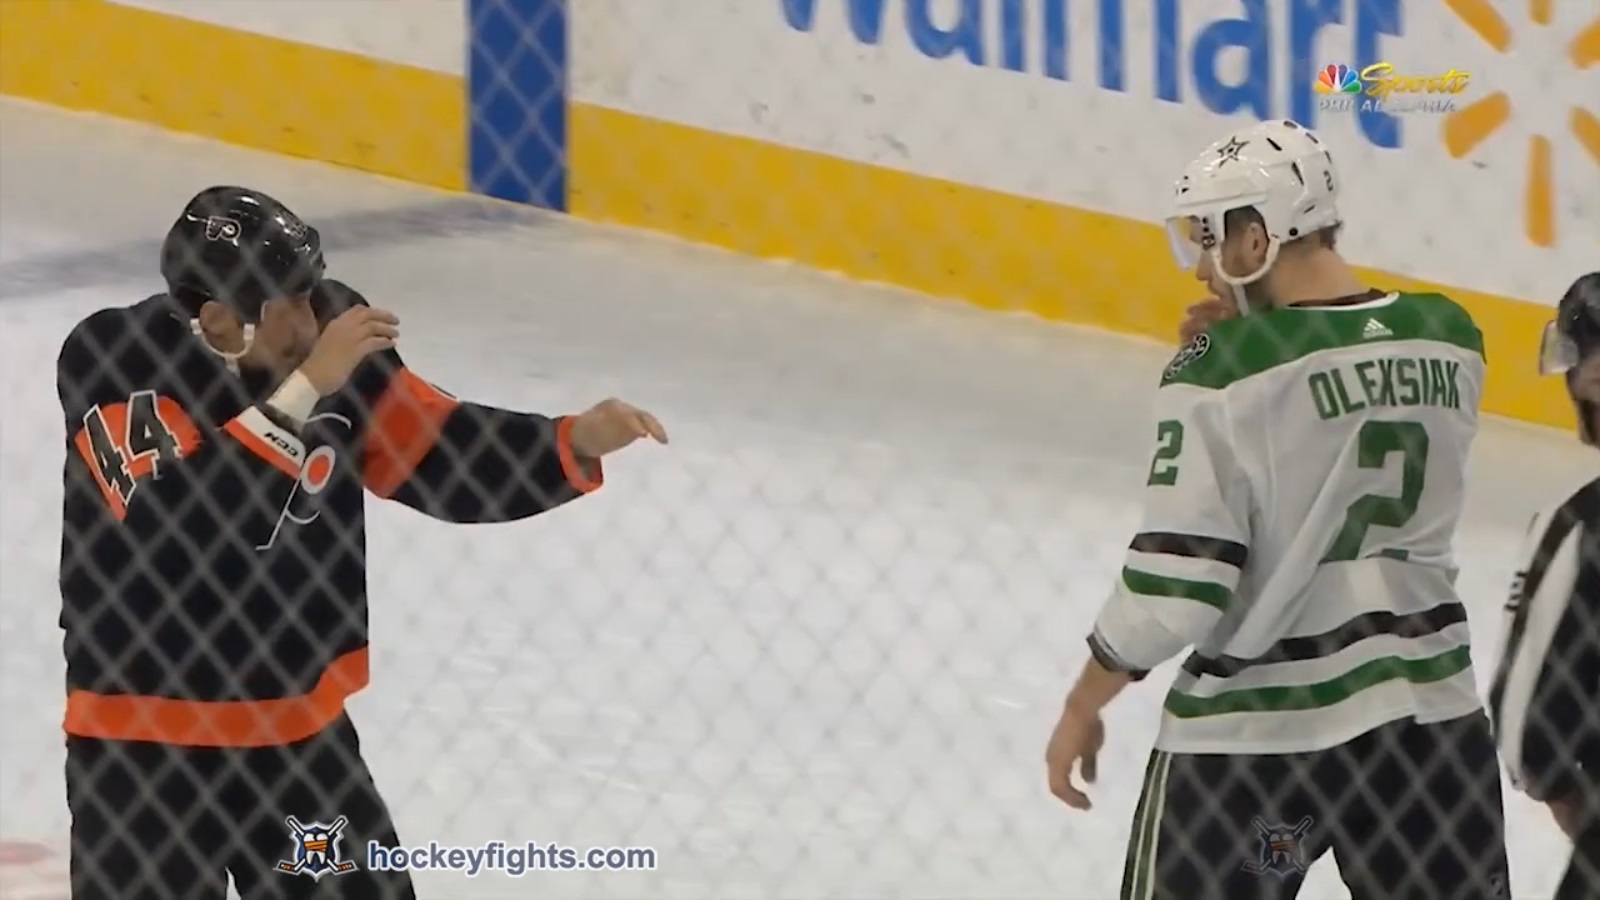 Jamie Oleksiak vs Chris Stewart